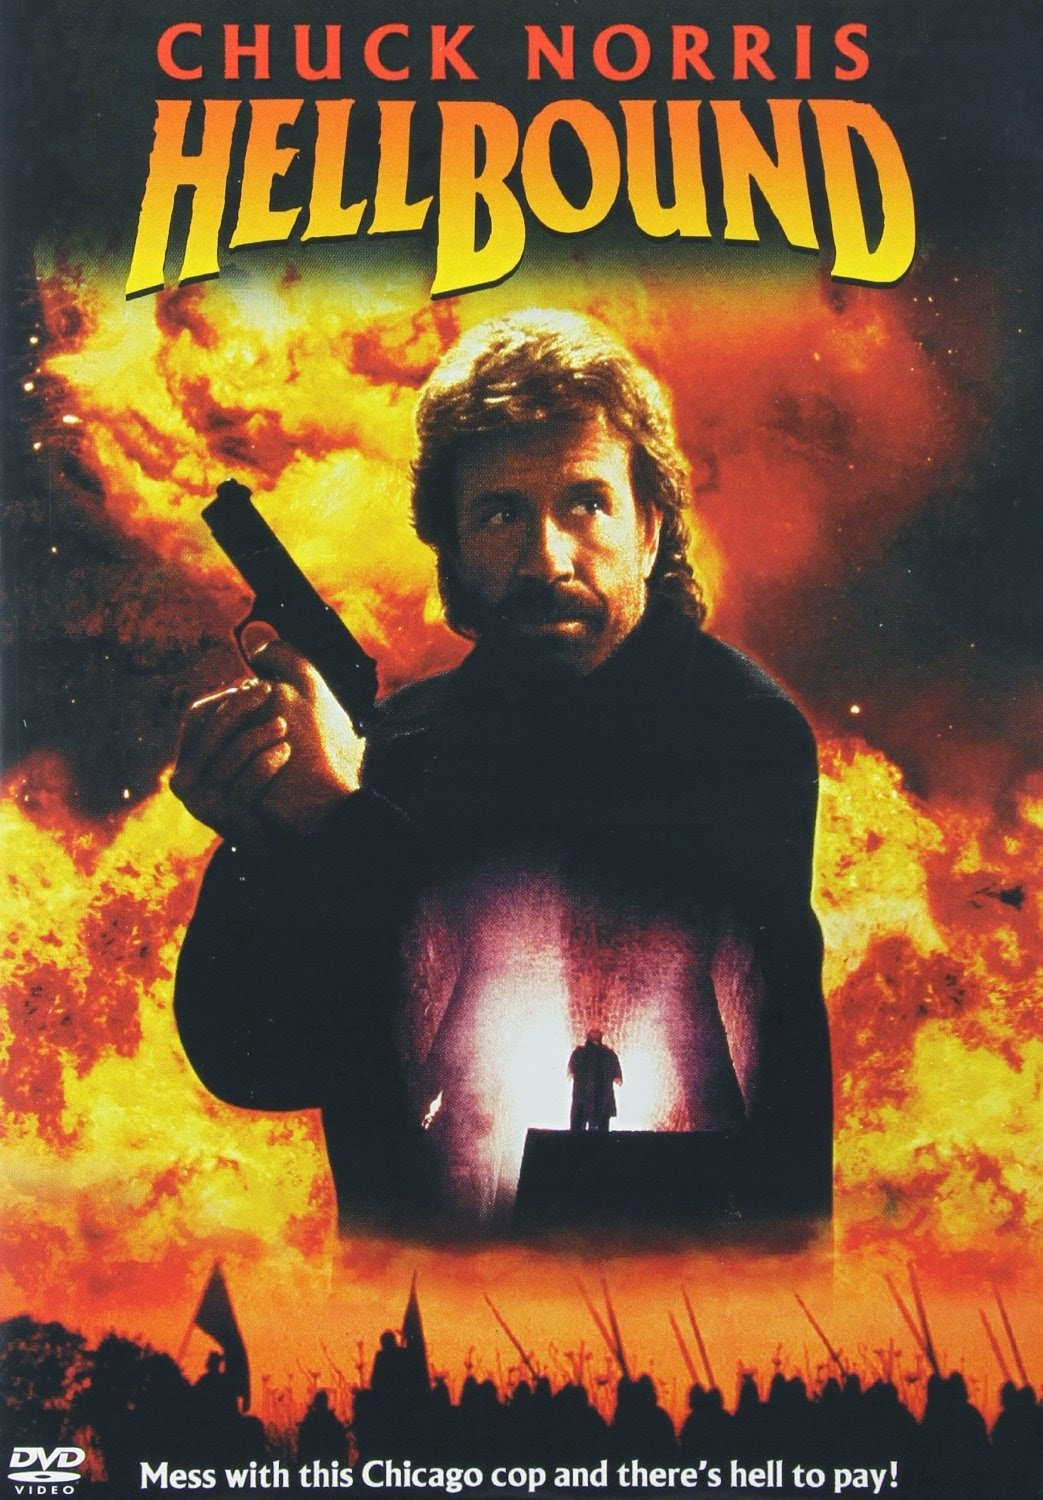 Hellbound the movie with Chuck Norris